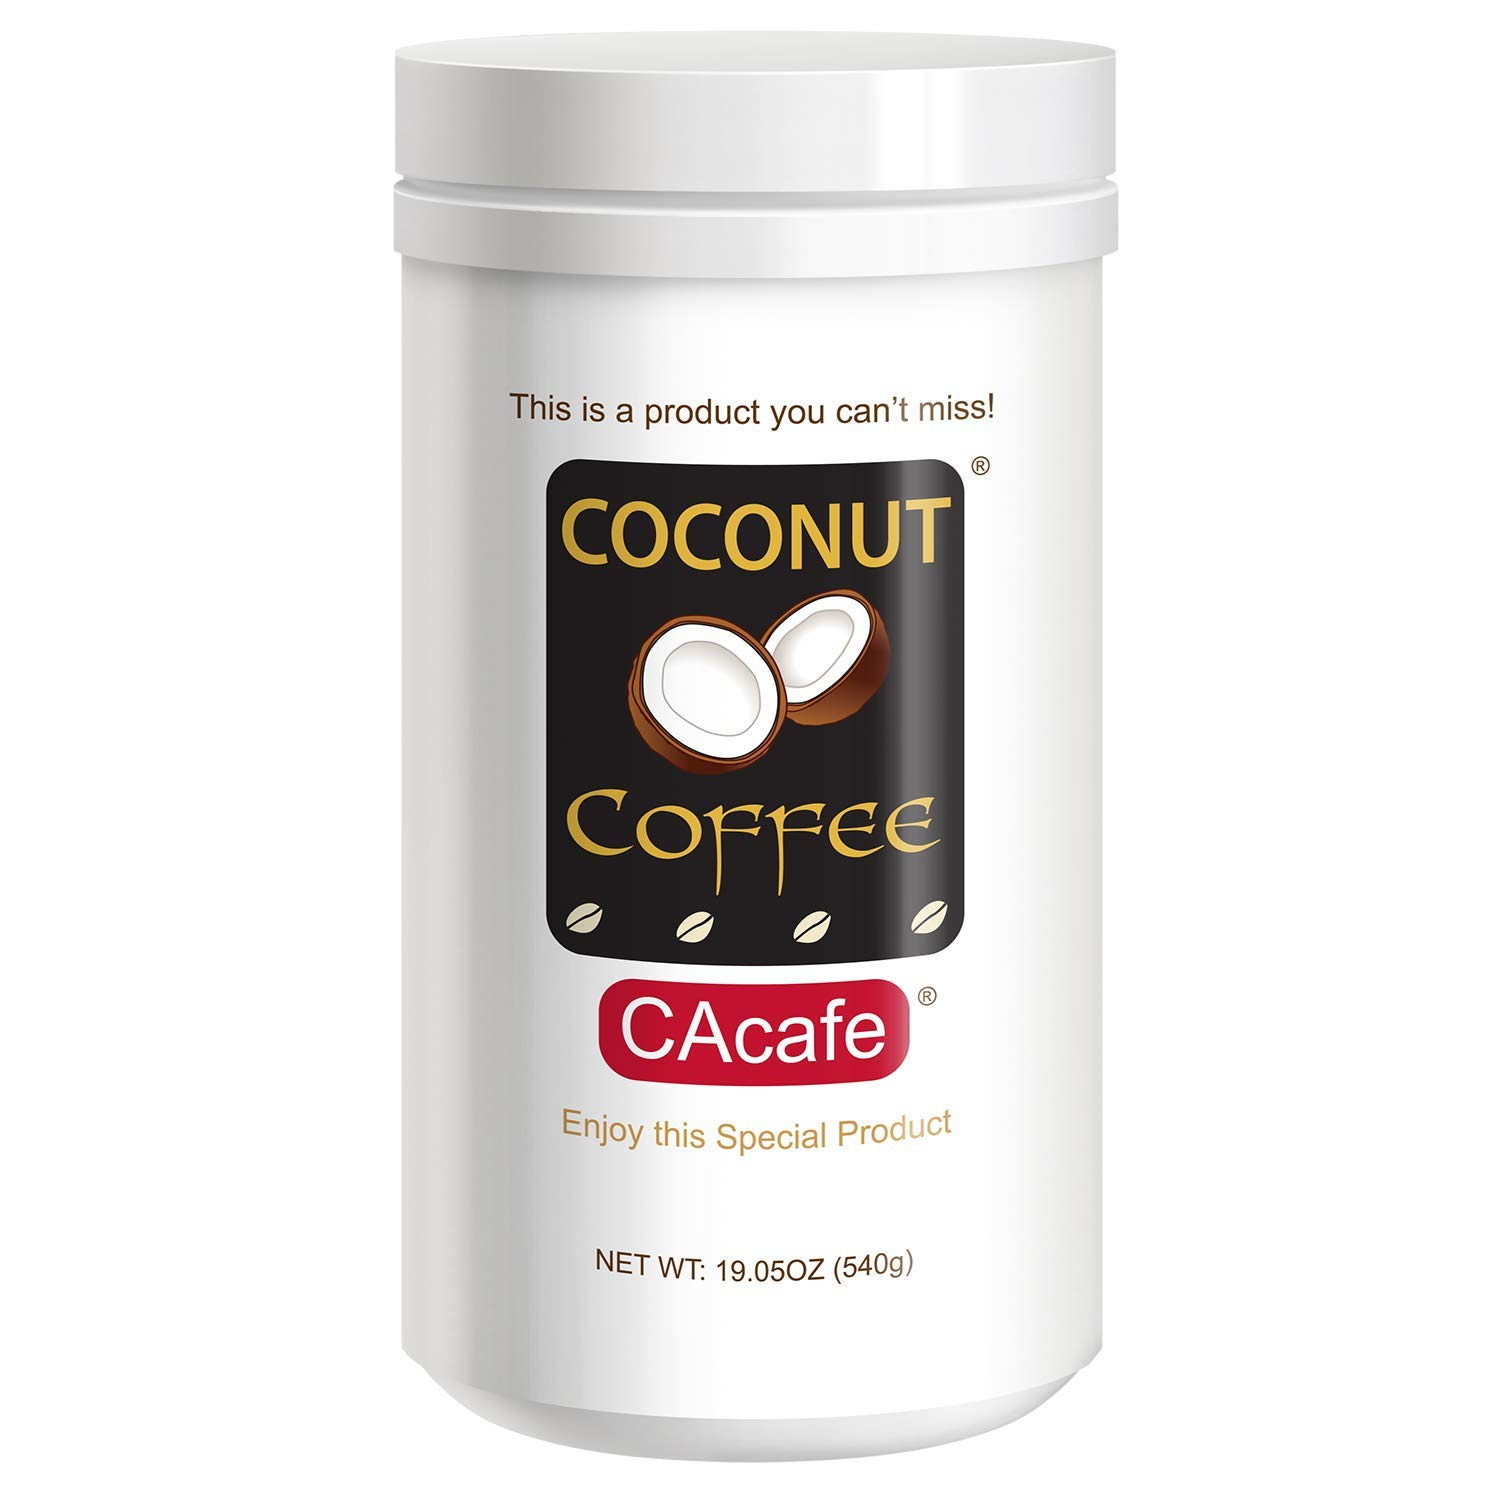 This is a Coconut Coffee You Can't Miss, Made from Coconut & Colombian Coffee. Coconuts Are Nutritious, Packed with Vitamins, & High In Antioxidants. Coconut is The World's Most Popular Superfood by CAcafe